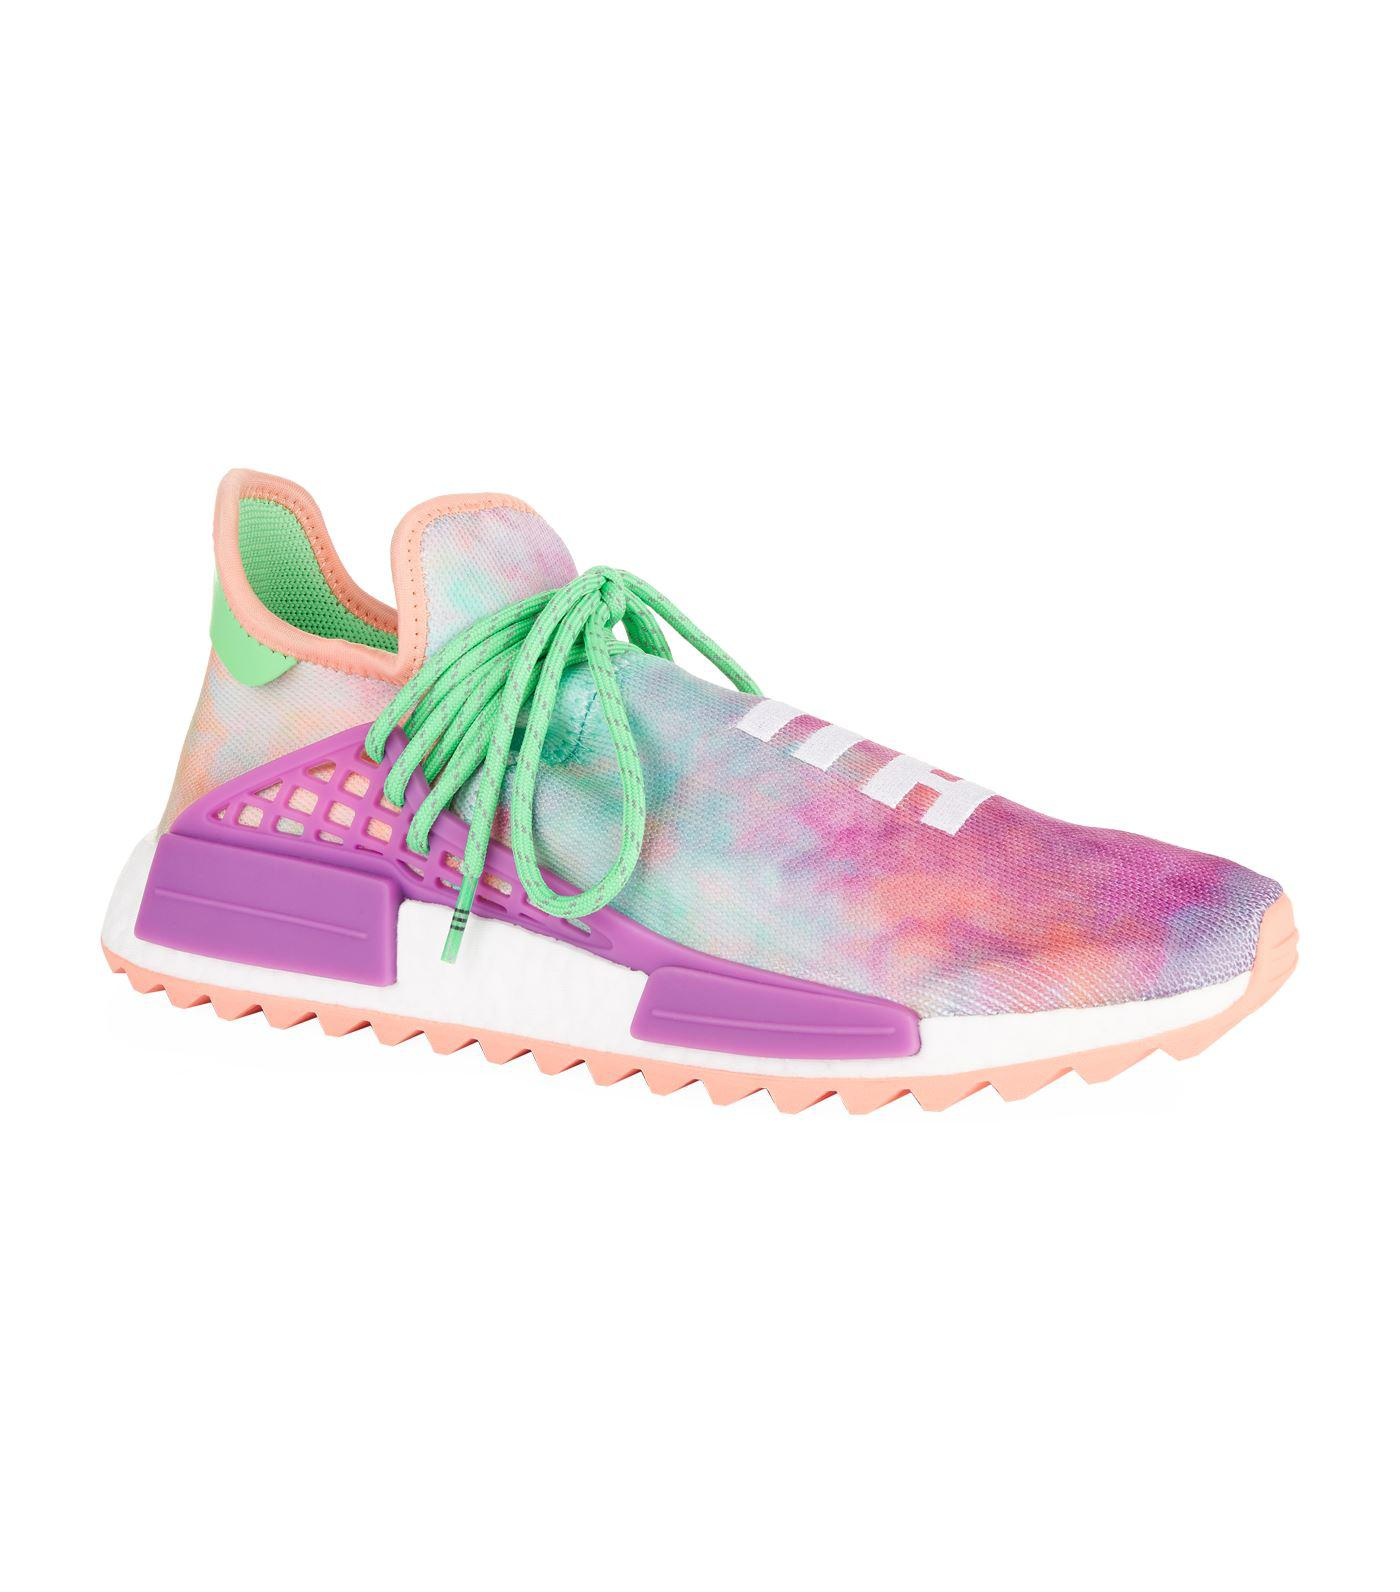 36e5c2dffb0bc5 Adidas Originals Pharrell Williams Hu Holi Nmd Mc Sneakers in Gray ...